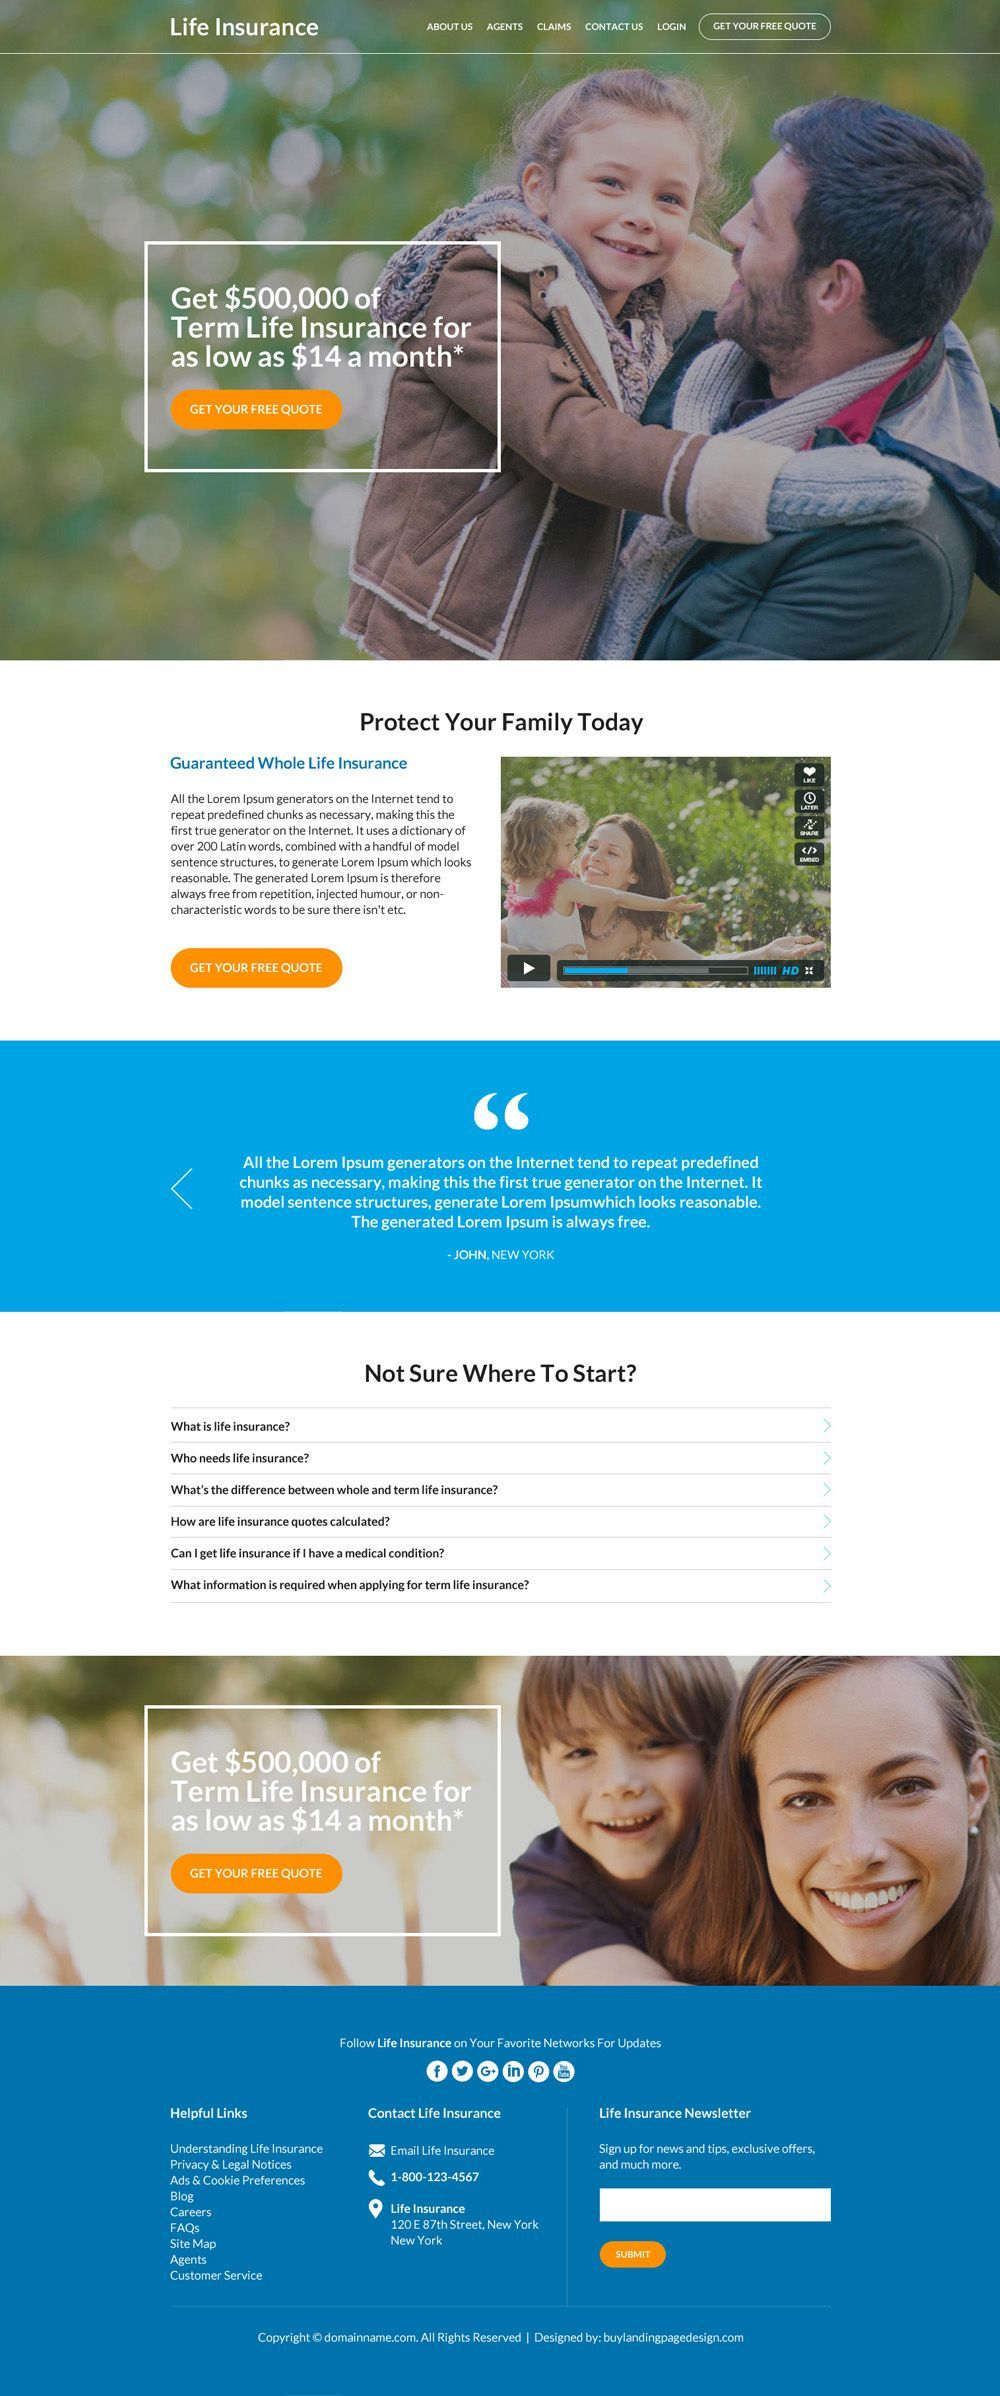 Life Insurance Website Design Templates To Boost Conversions